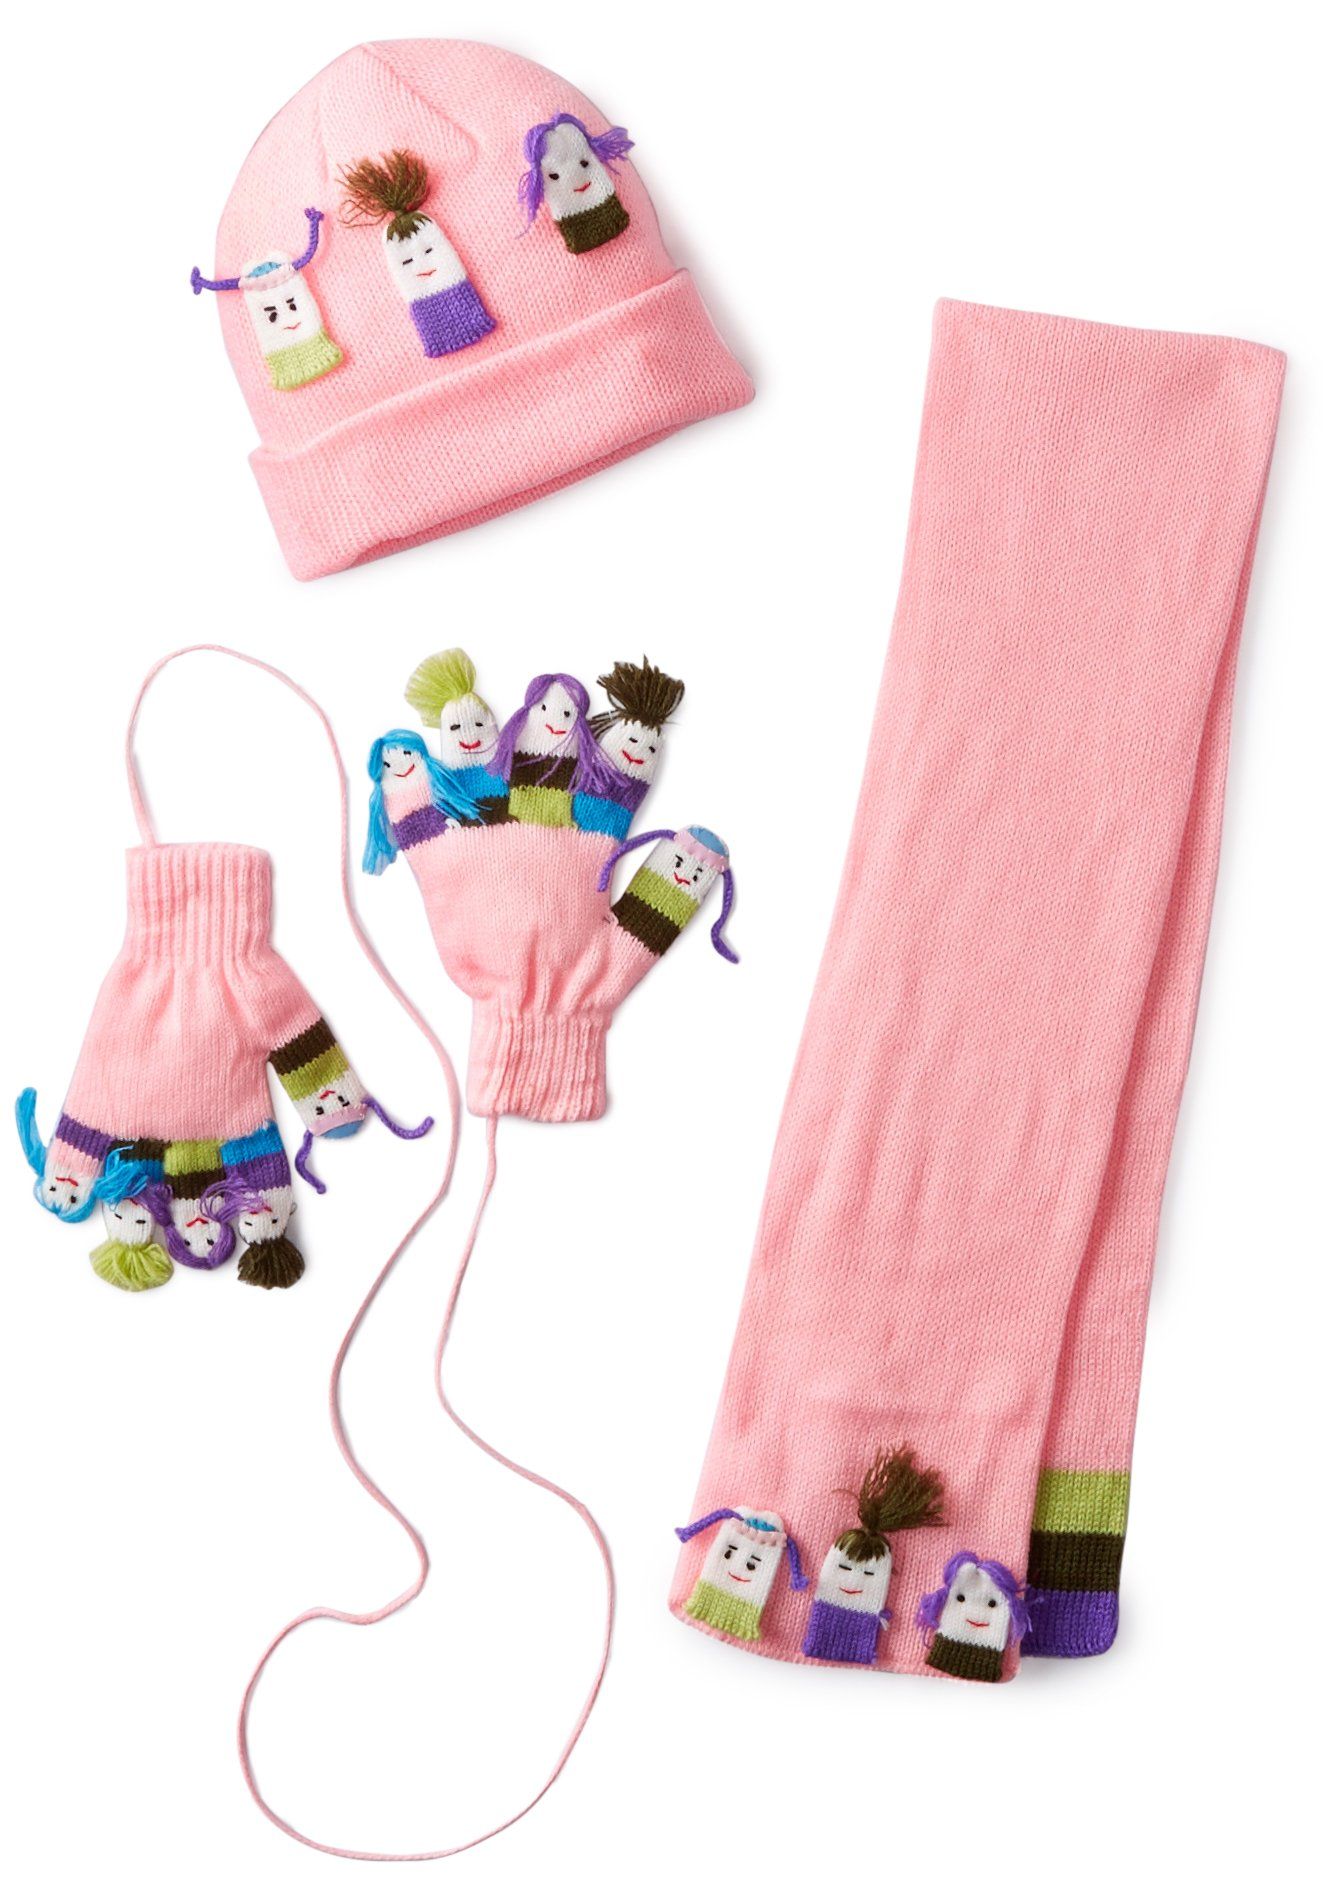 Kidorable Pink Girls Soft Knit Hat/Scarf/Glove Set for Girls w/5 Fun Unique Puppet Faces, Ages 6-8